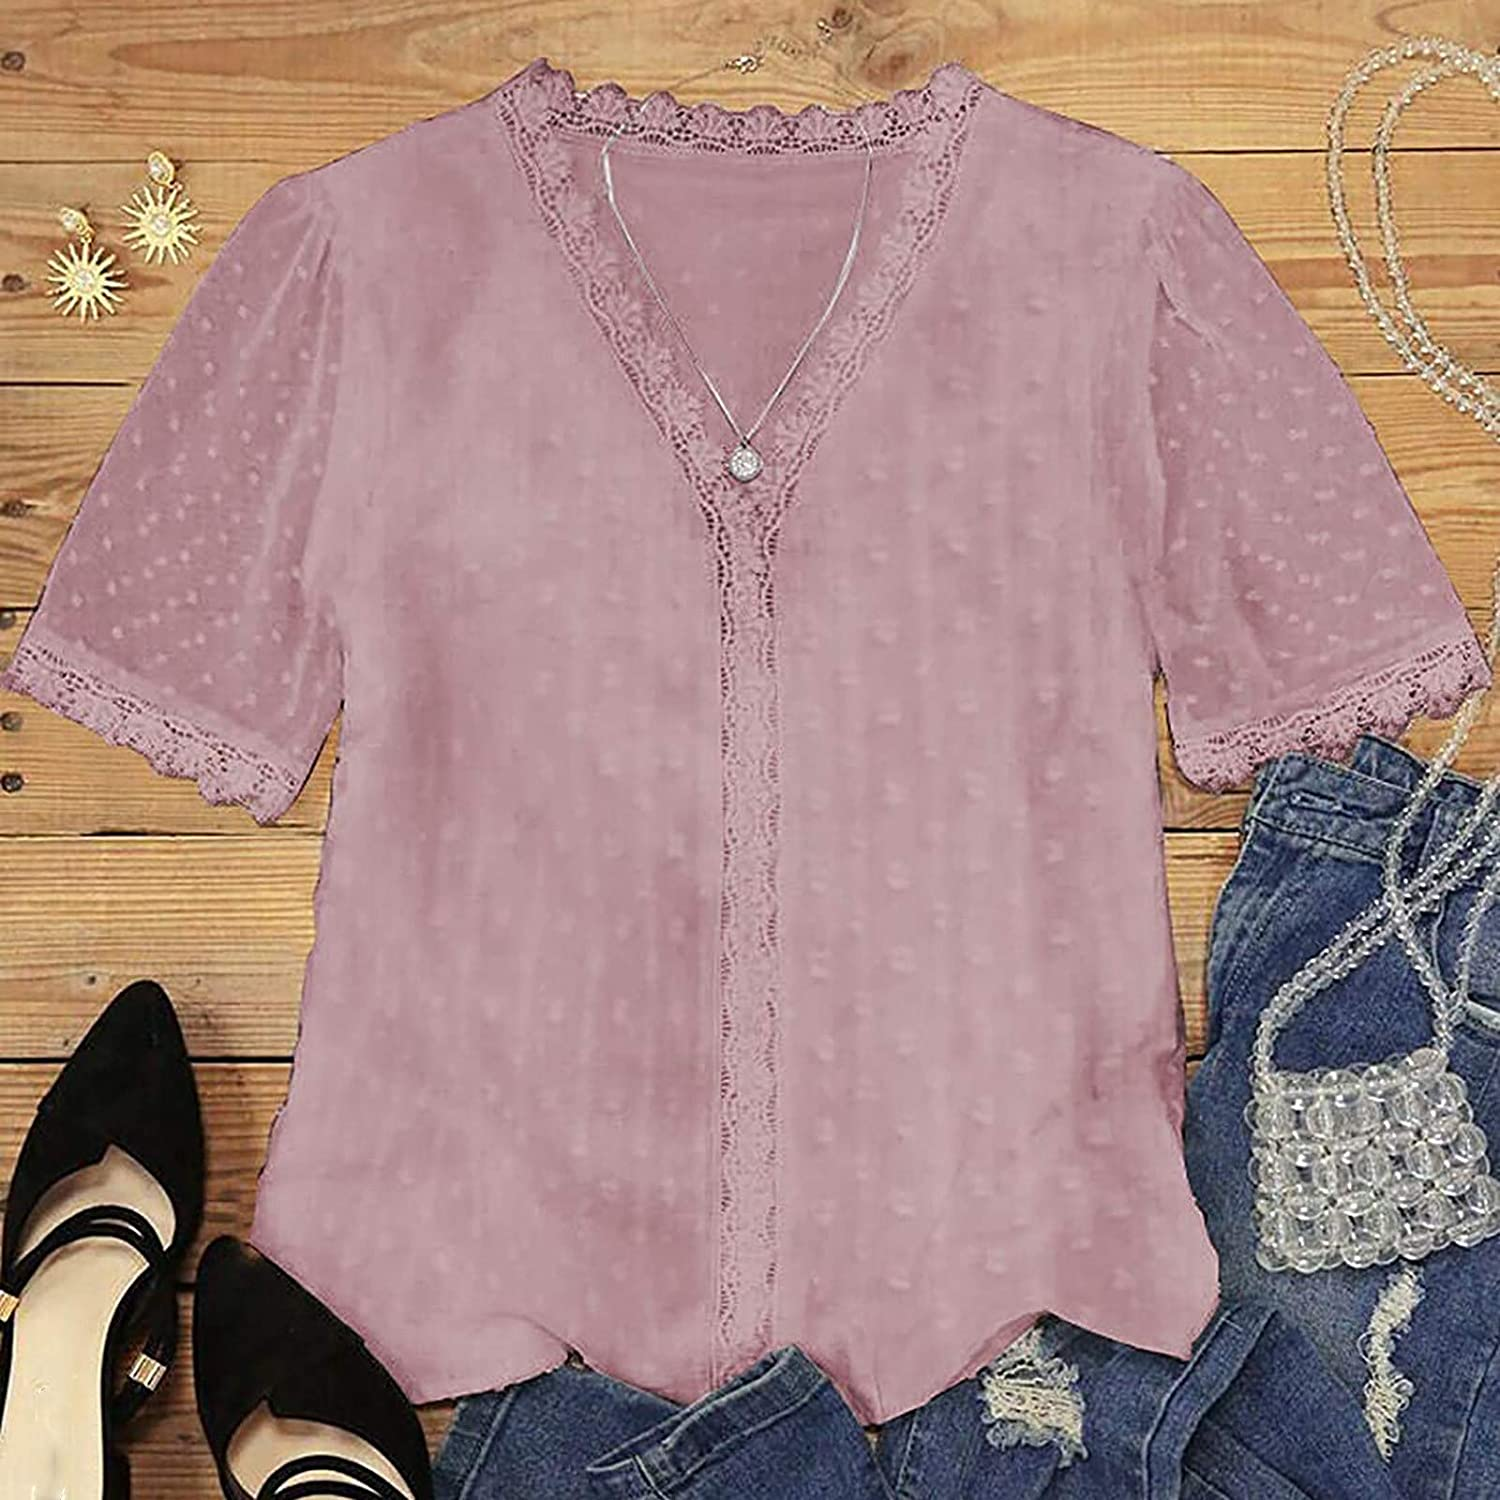 Aniwood Tops for Women Casual Summer,Women's V Neck Lace Crochet Tunic Tank Tops Flowy Casual Sleeveless Blouses Shirts